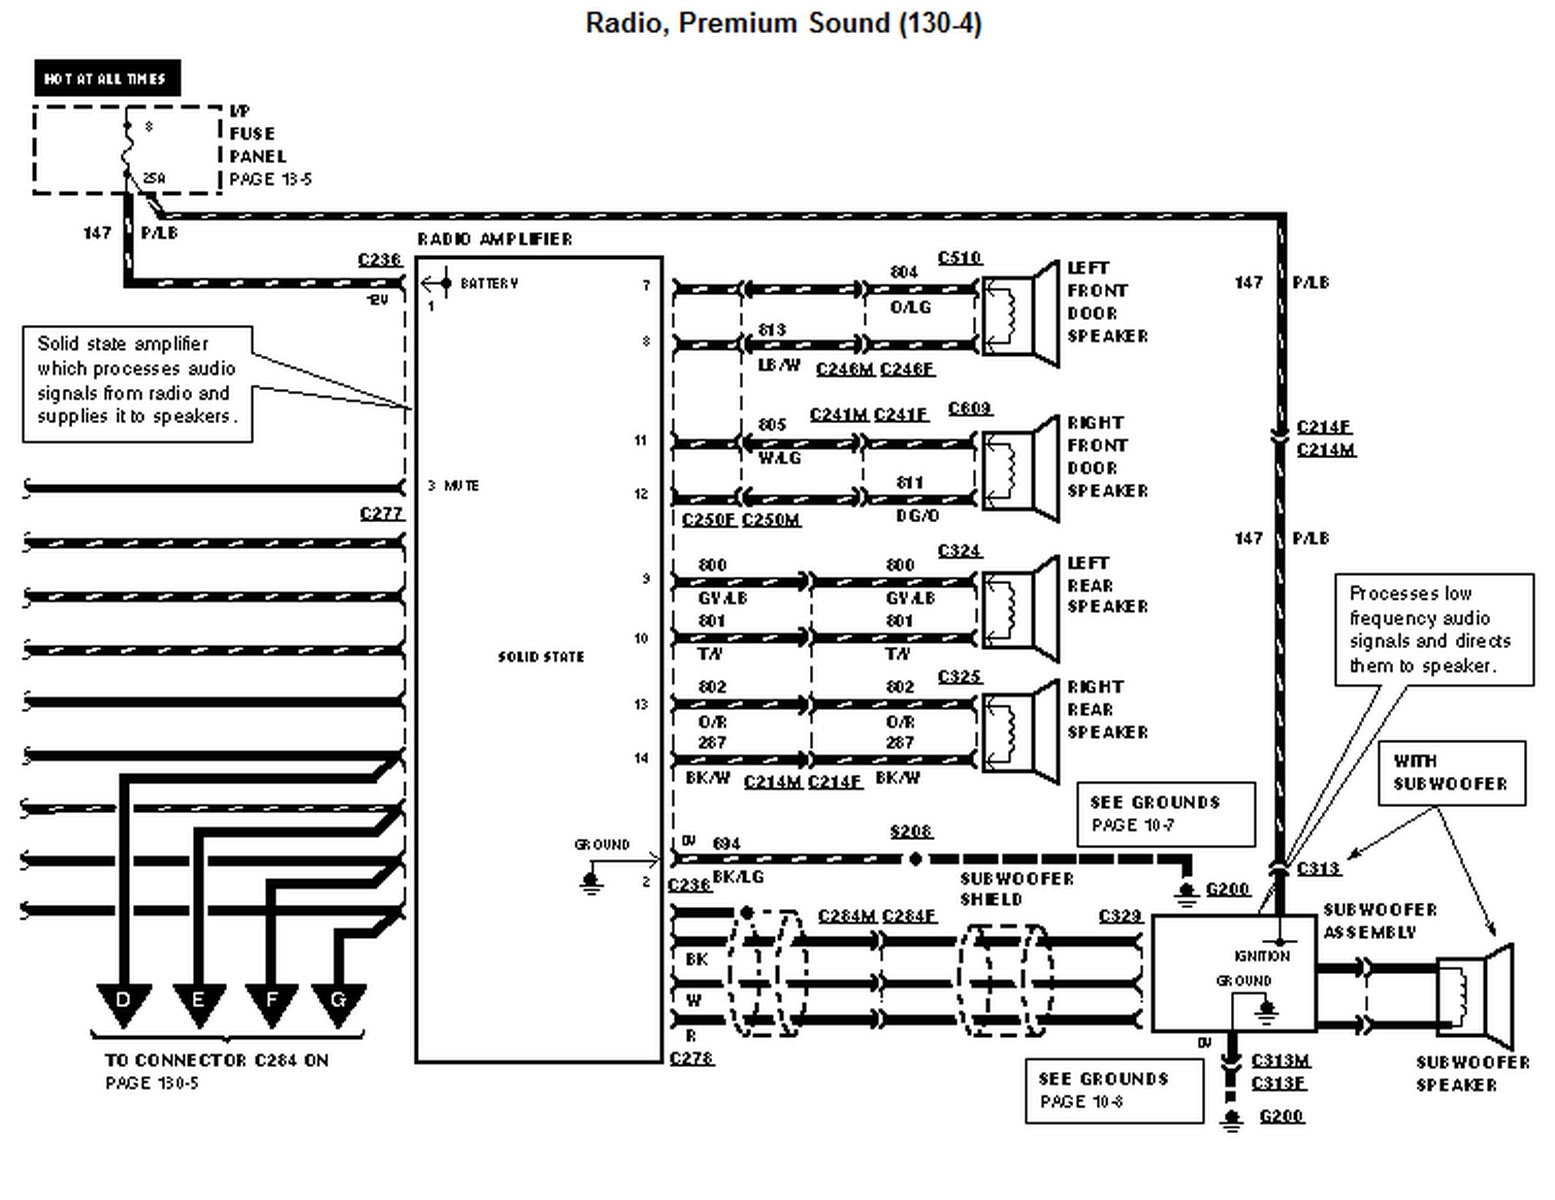 2008 ford f 150 radio wire diagram 2008 ford f250 radio wiring diagram | free wiring diagram